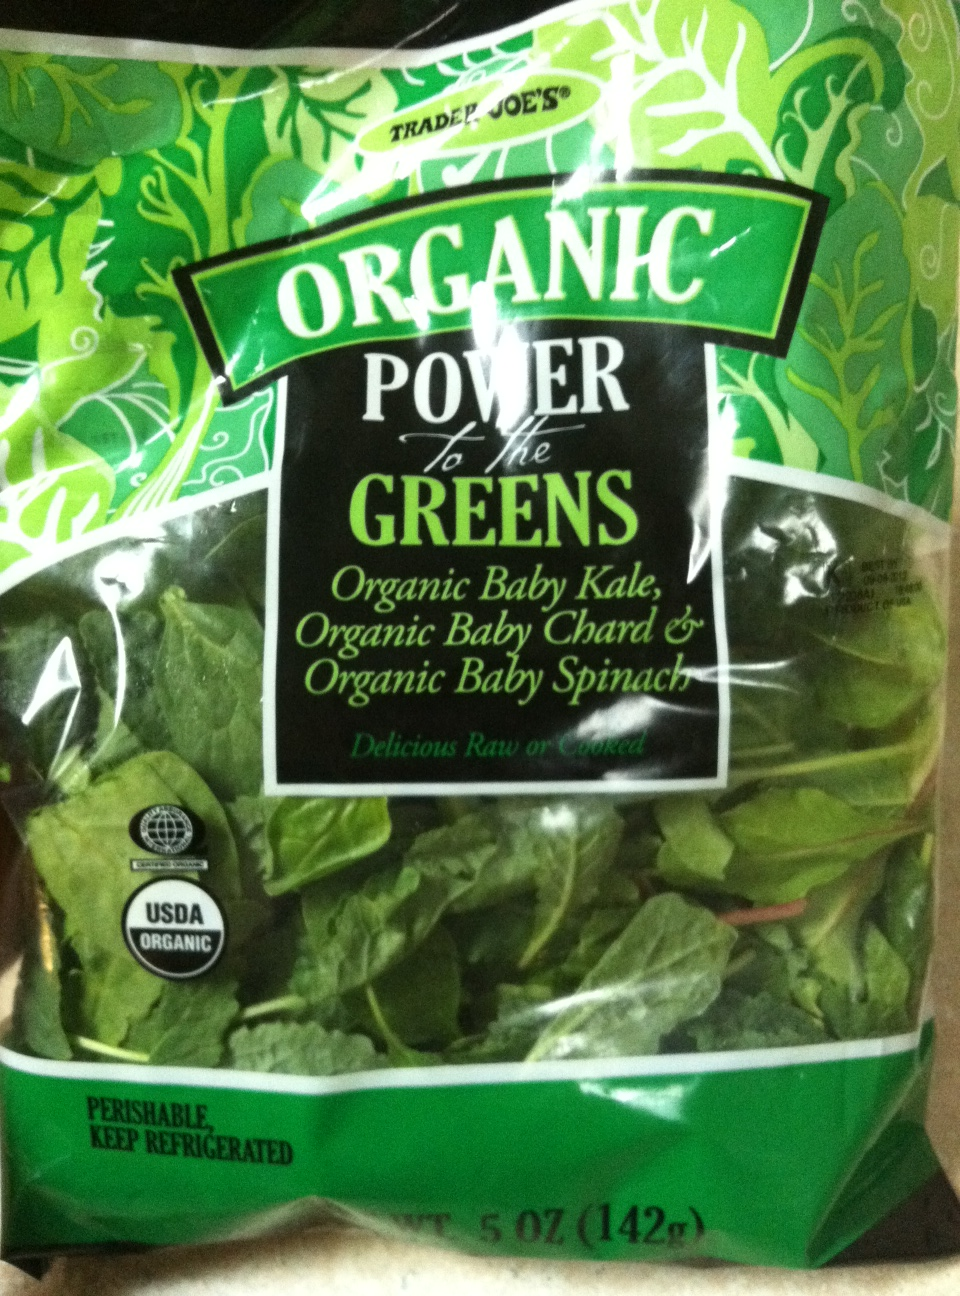 Greens power